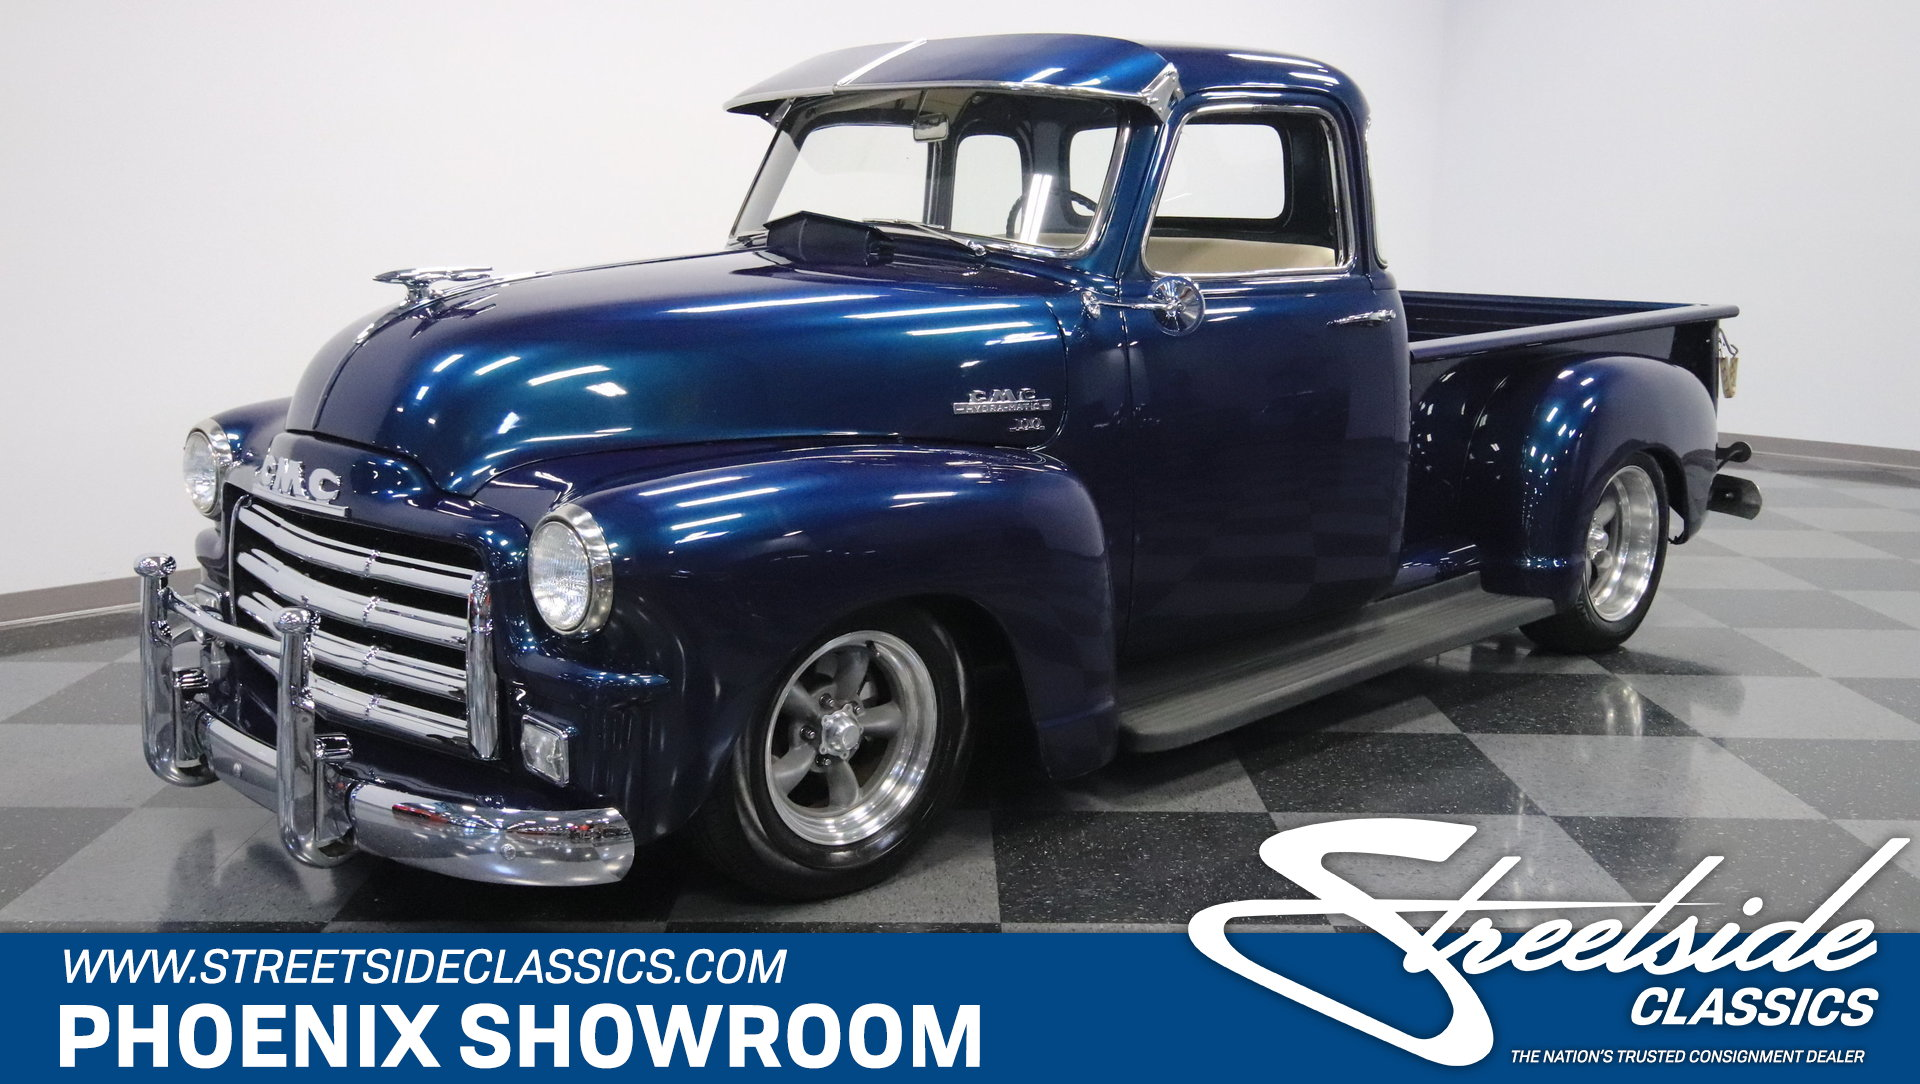 1954 Gmc 100 Streetside Classics The Nations Trusted Classic Pickup Truck View 360